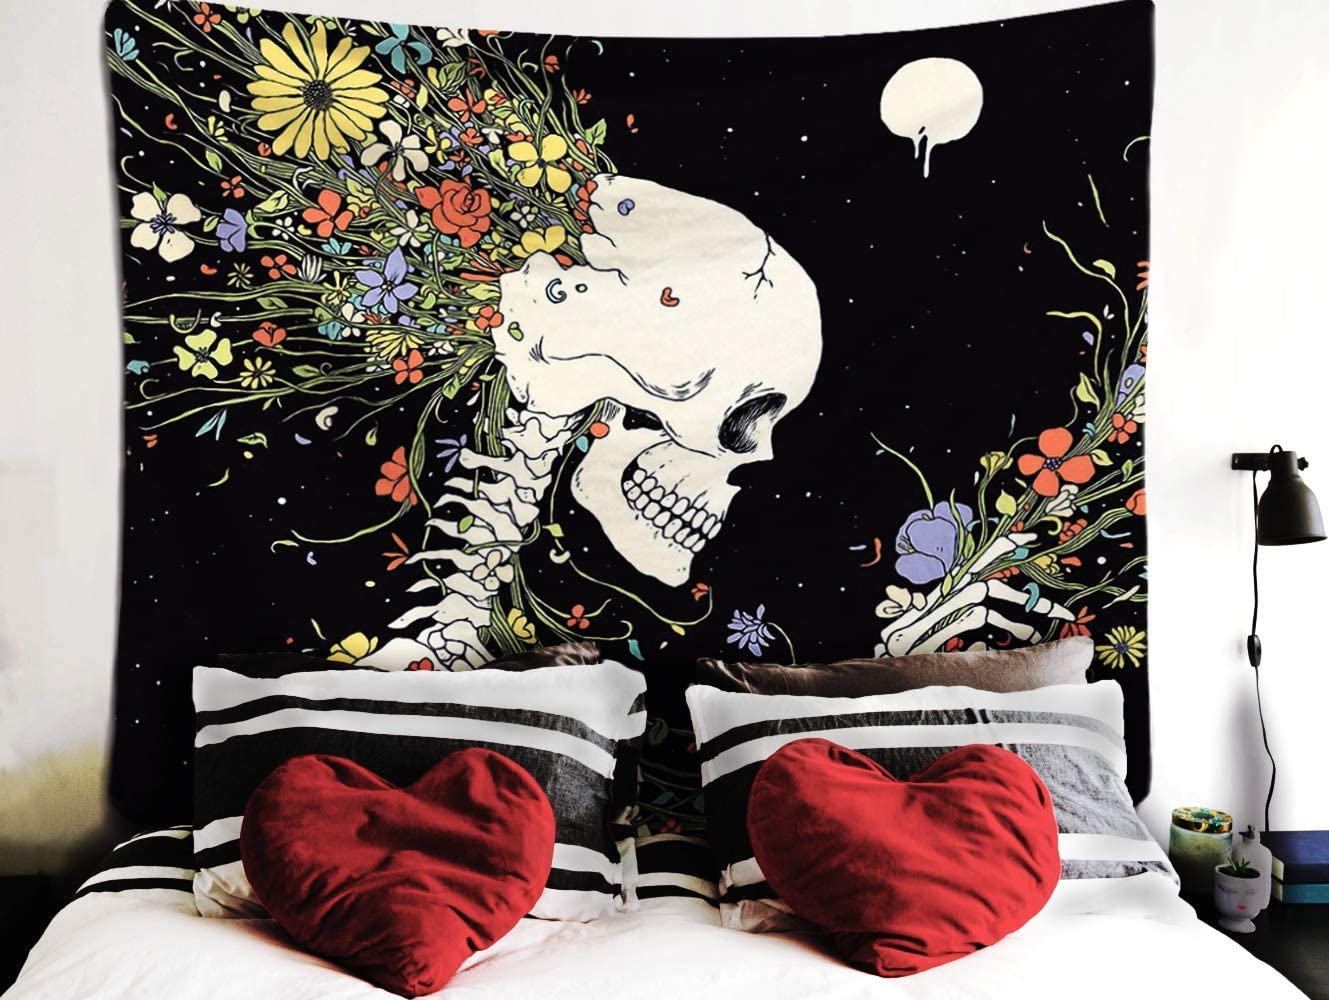 Maelove Skull Tapestry Skeleton Tapestry Hippie Wall Hanging Romantic Tapestries for Room Colorful Decor (51.2 X 59 inches)